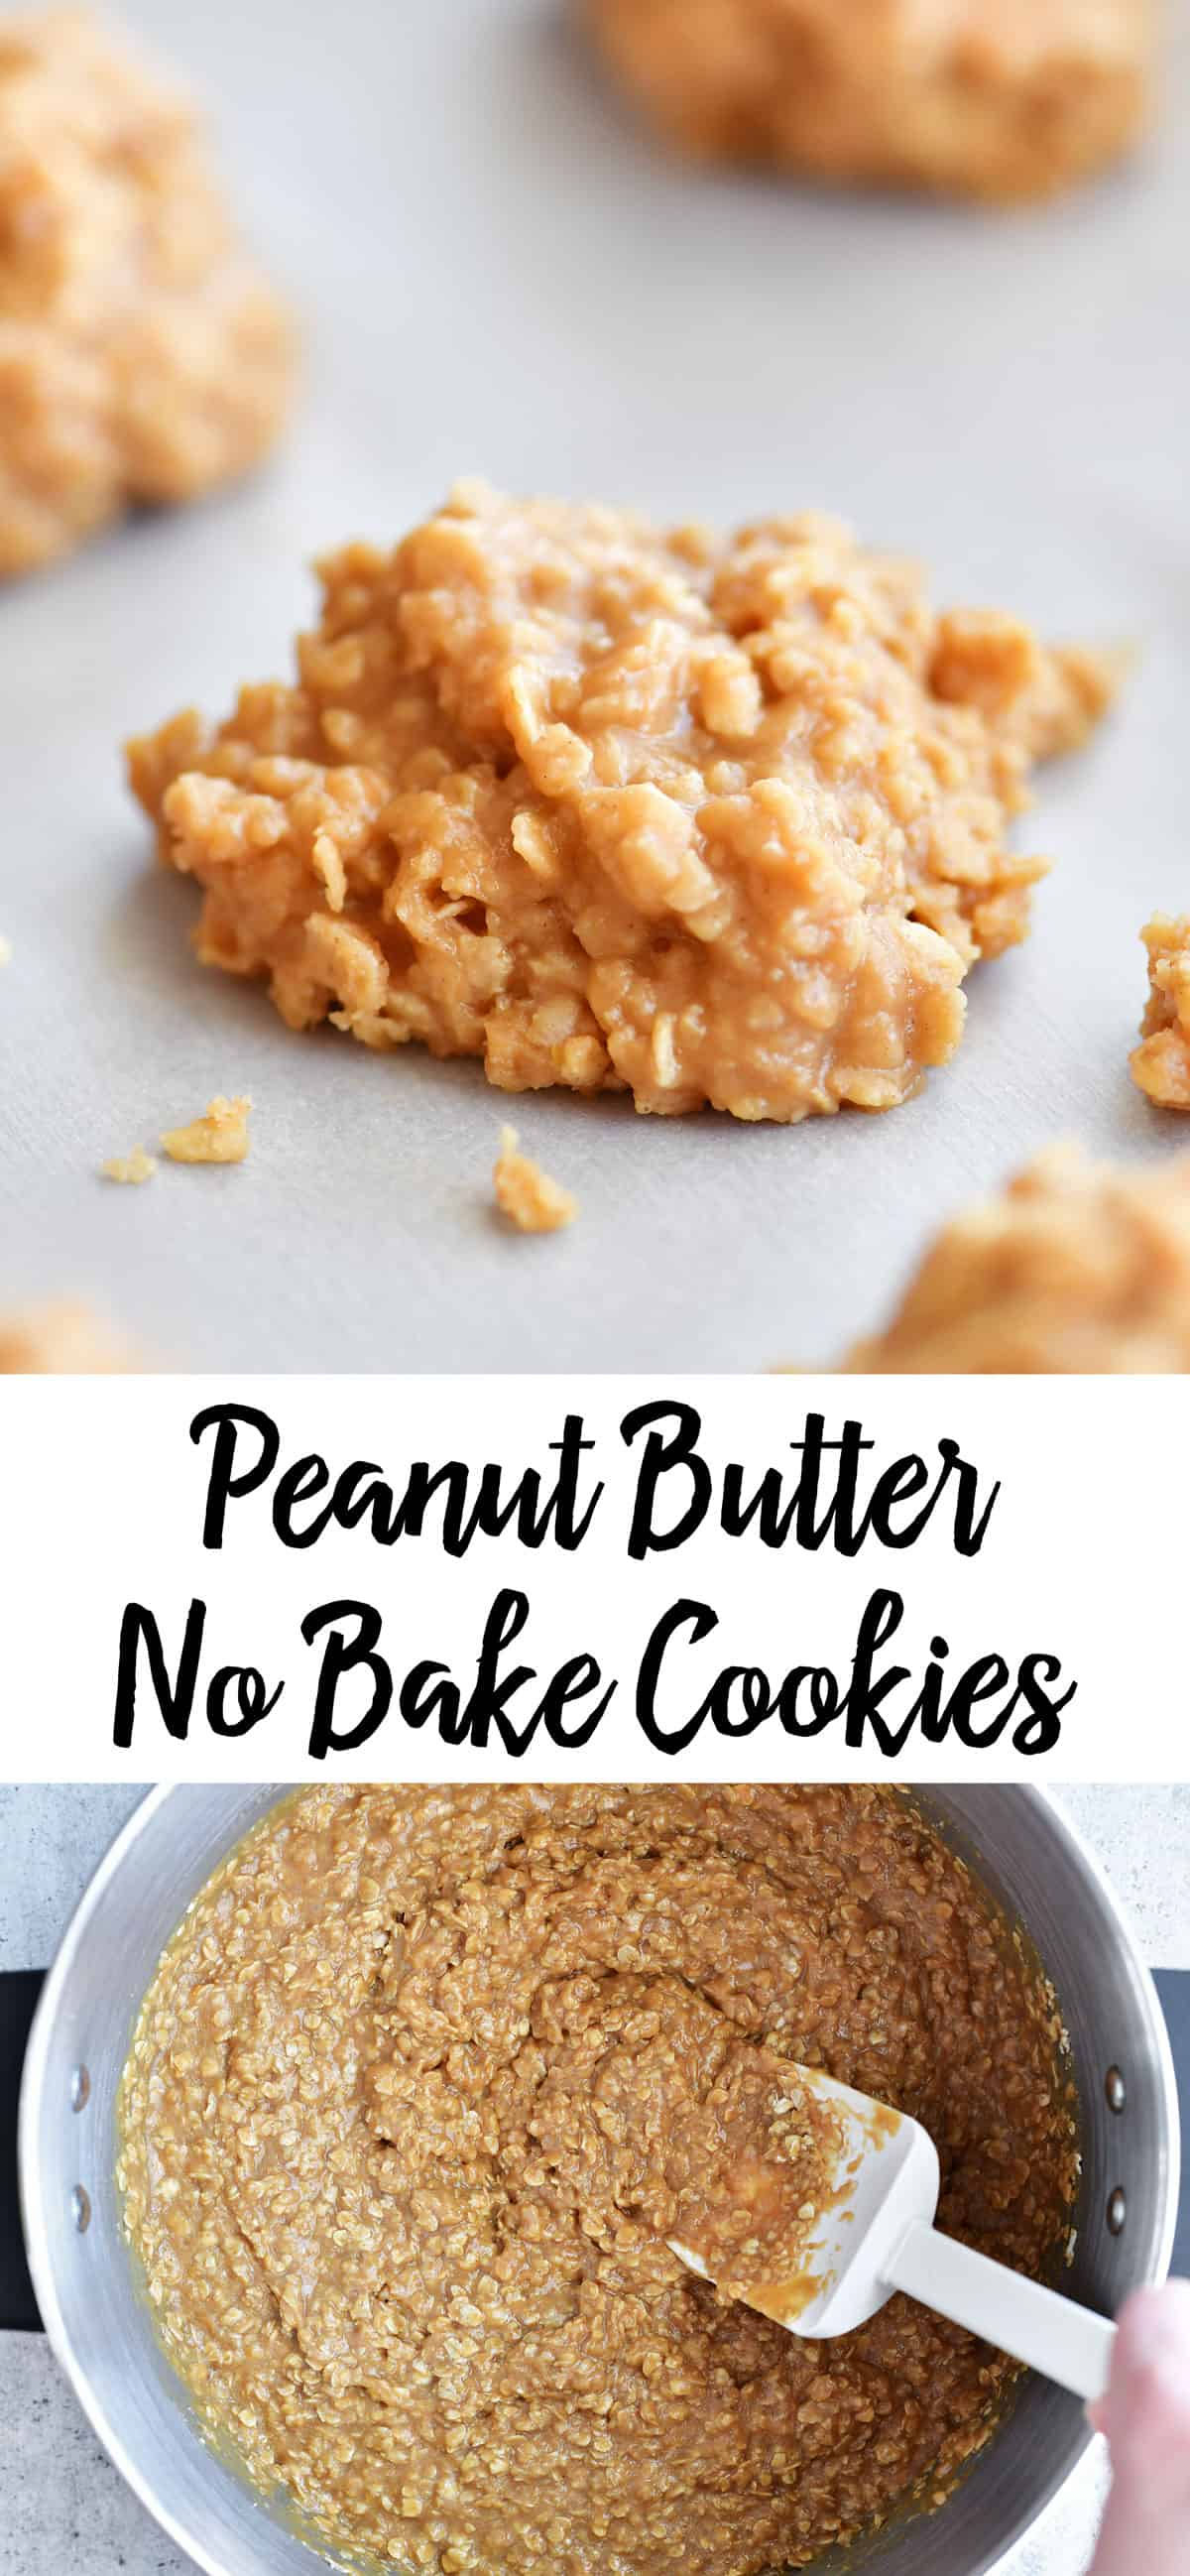 peanut butter no bake cookies photo collage